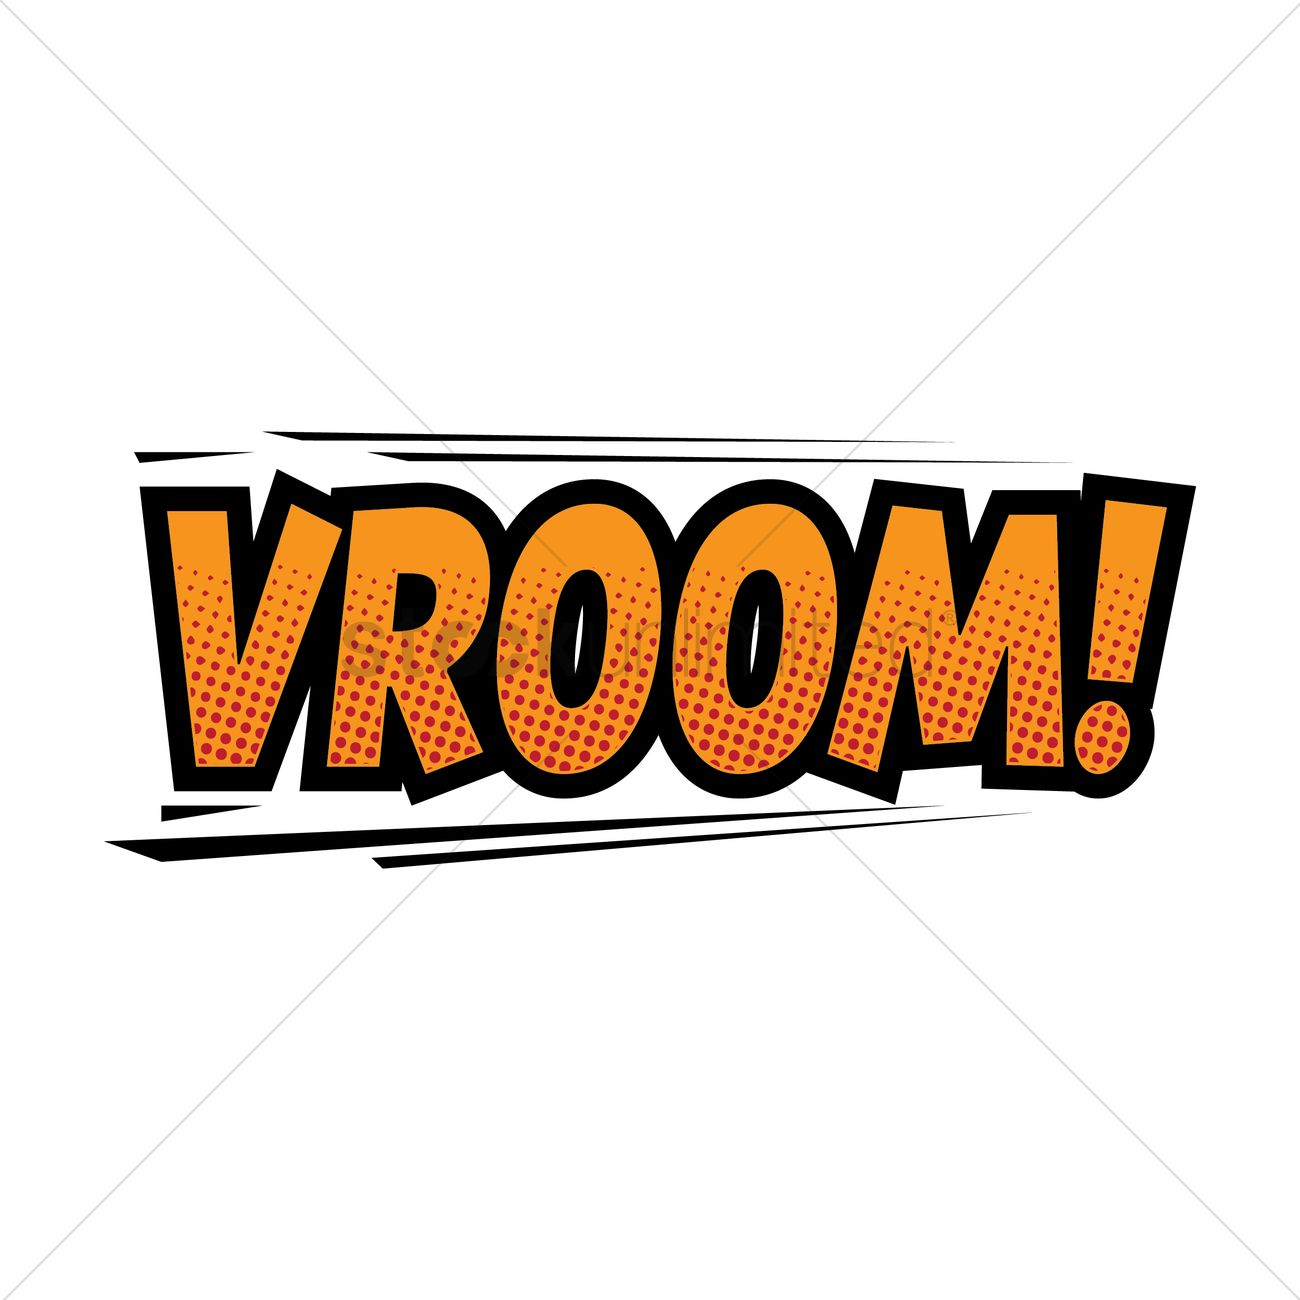 Vroom Comic Speech Vector Image 1825205 Stockunlimited